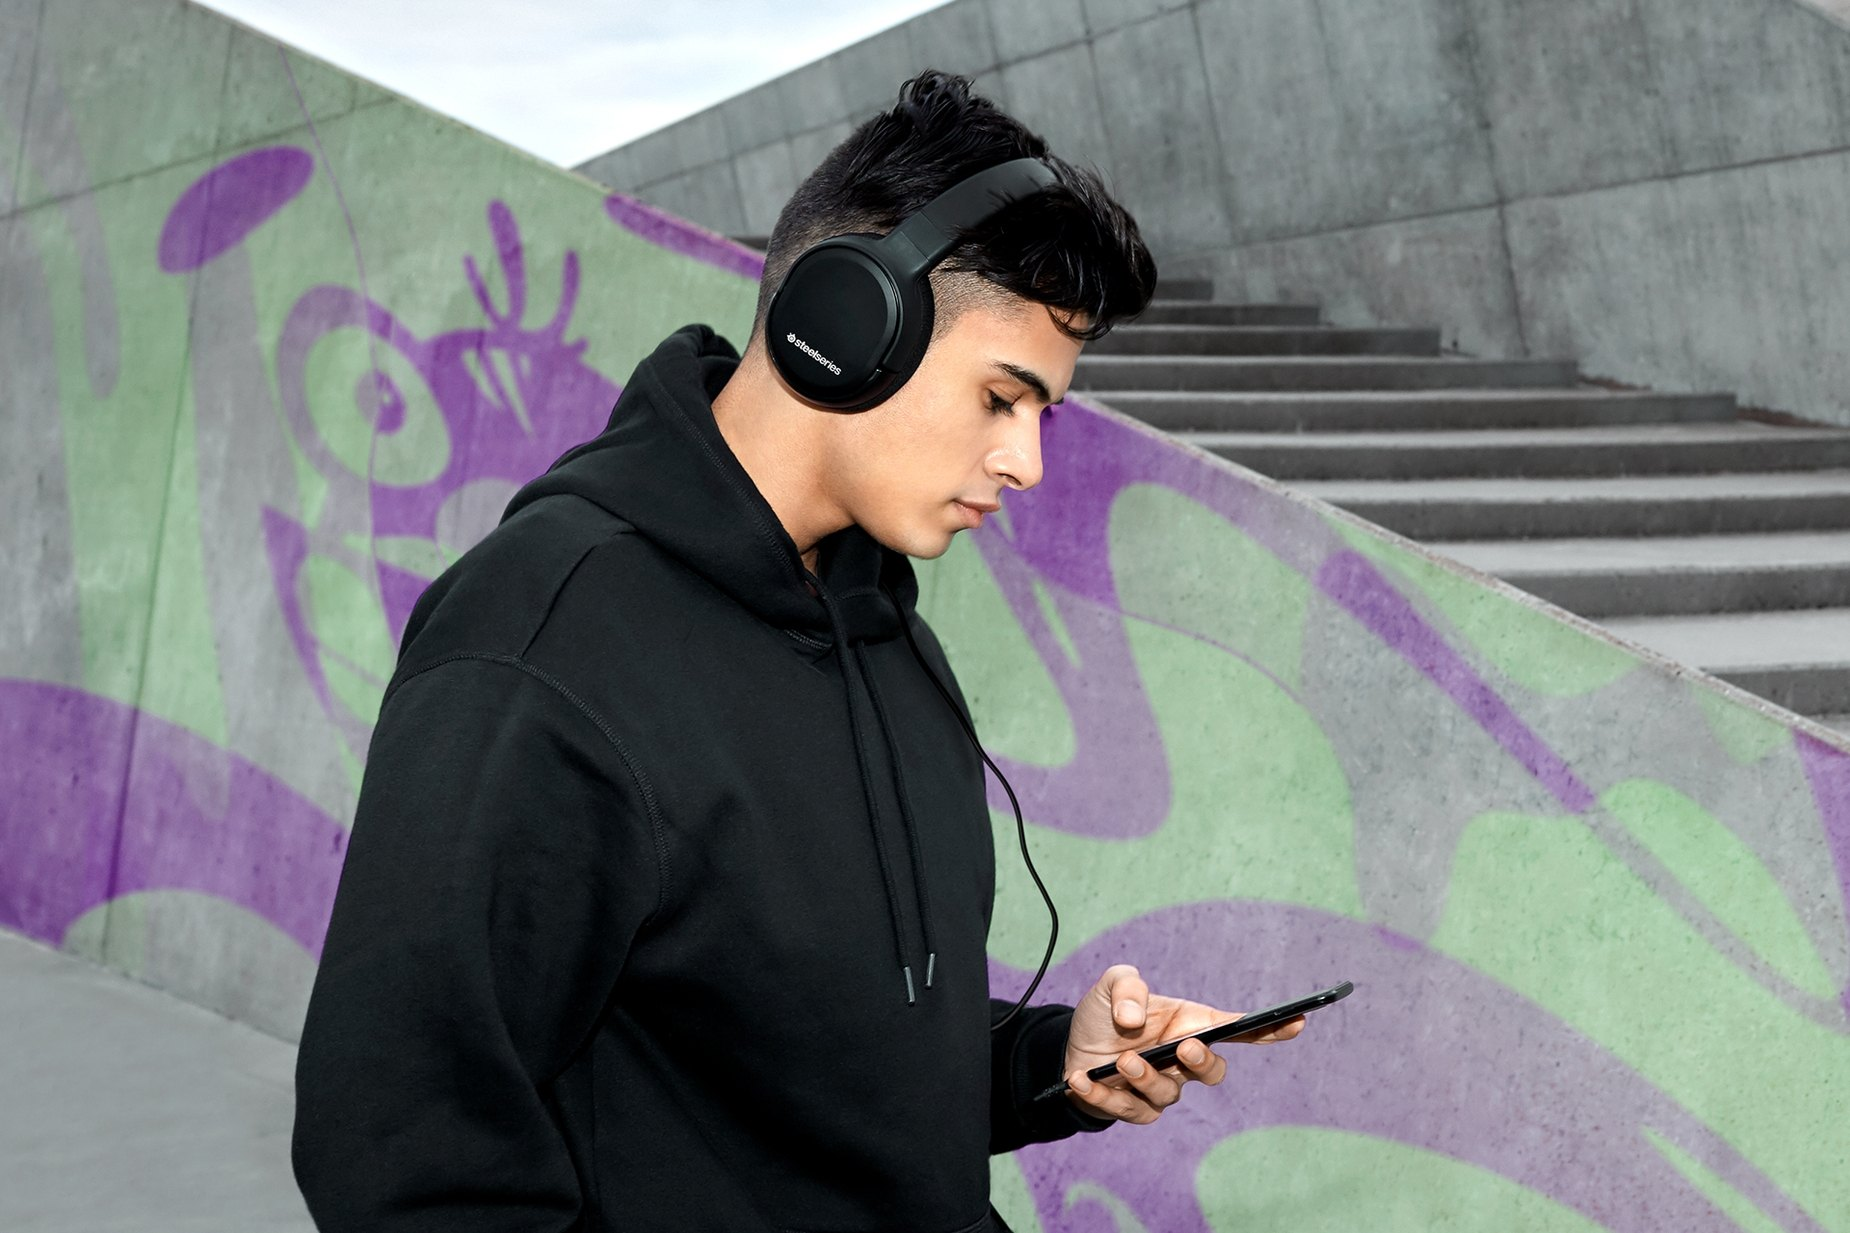 Gamer outdoors listening to music on a mobile device using the Arctis 1 gaming headset